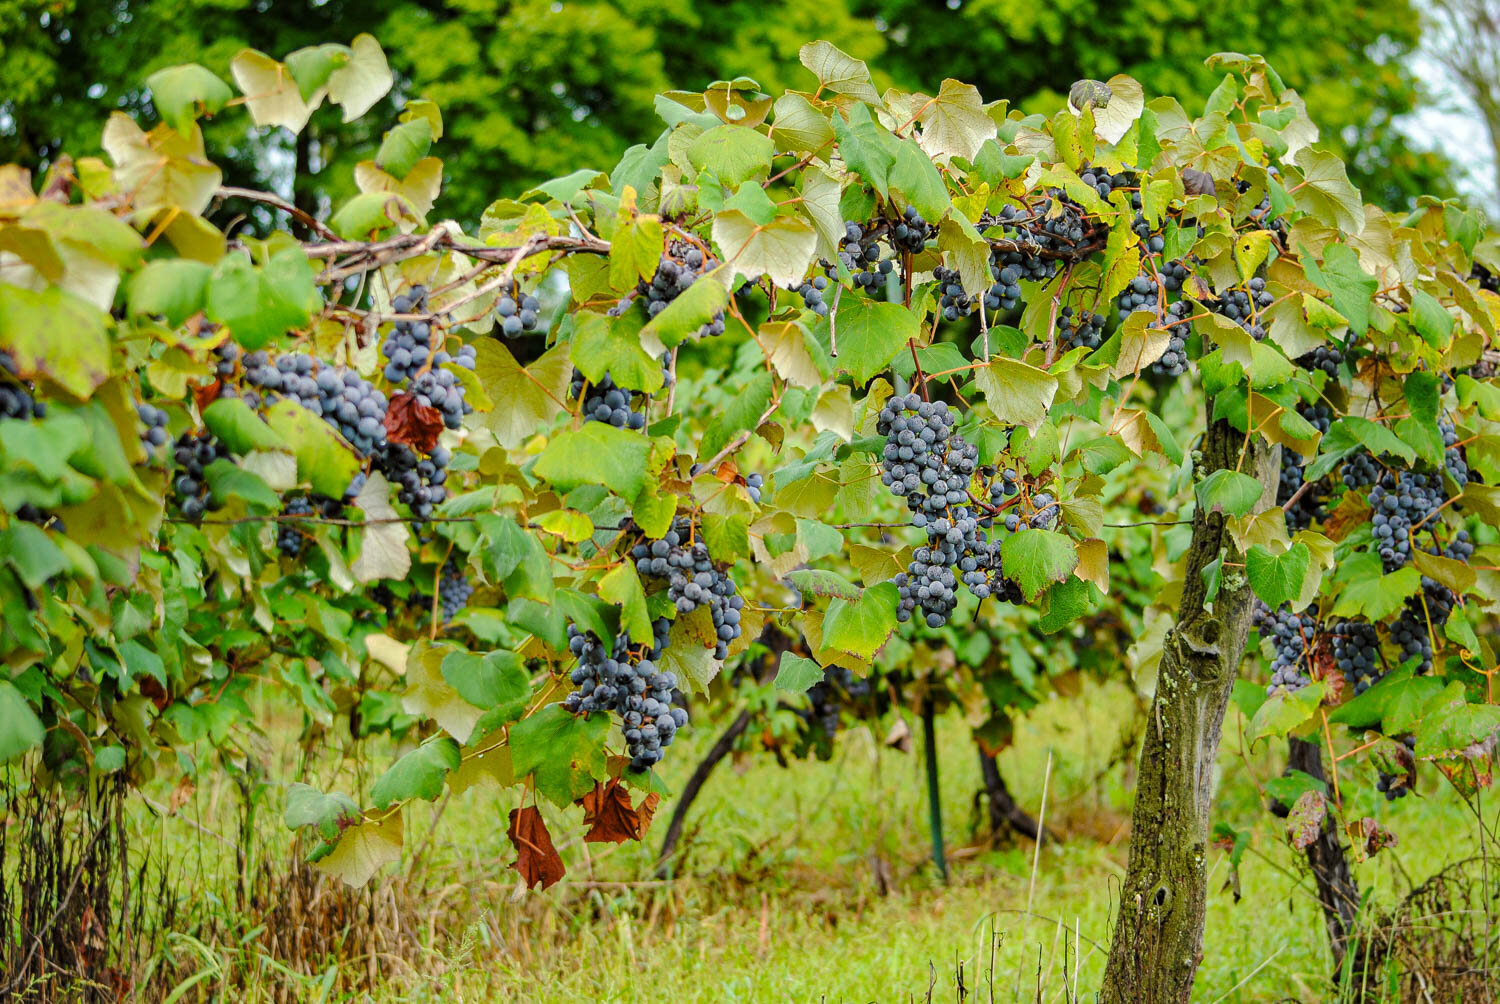 'Concord' grapes hang from the vine.